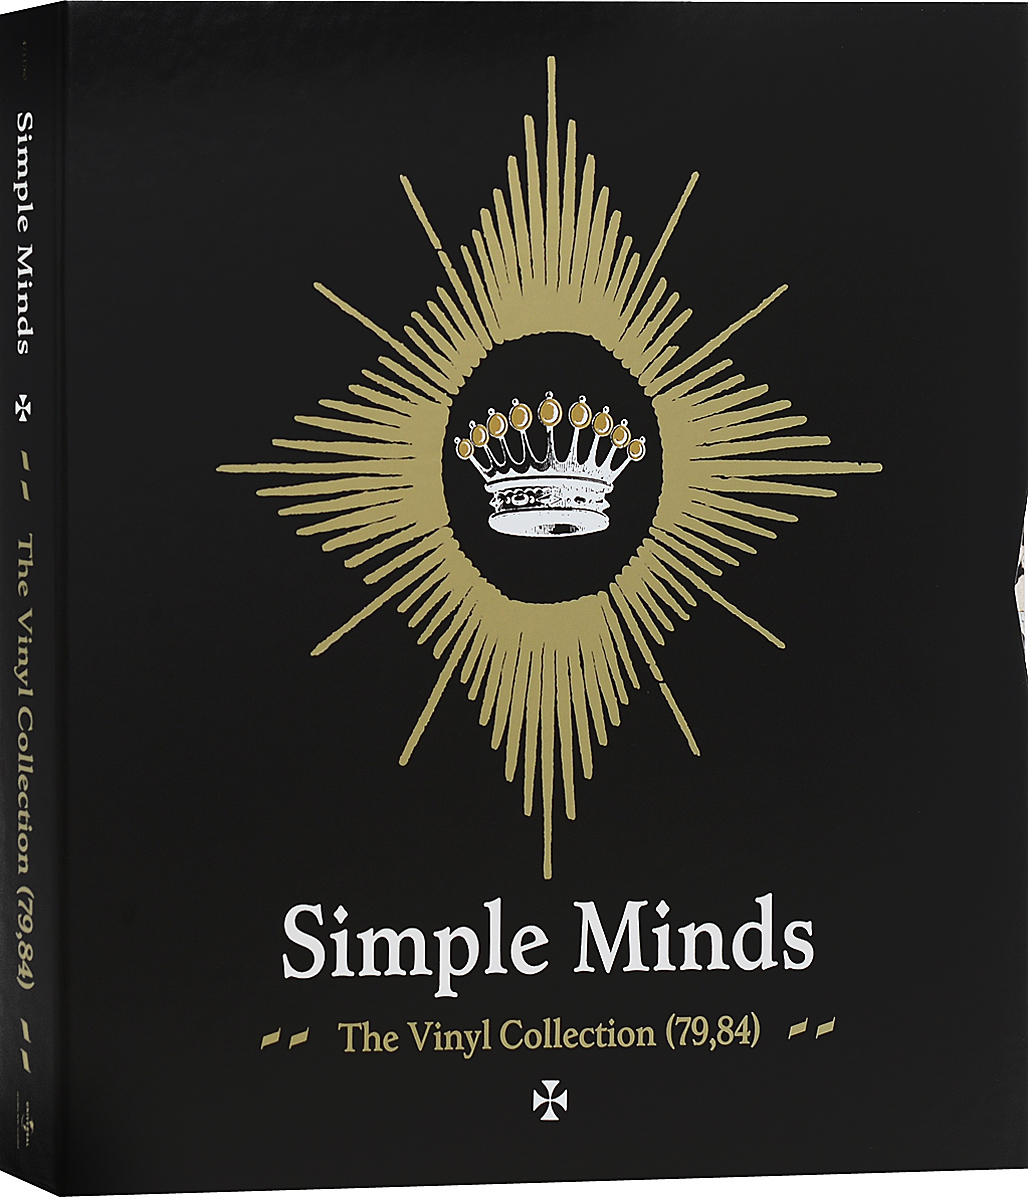 Simple Minds Simple Minds. The Vinyl Collection (79,84) (7 LP) original new innolux 5 6 inch at056tn53 v 1 lcd screen with touch